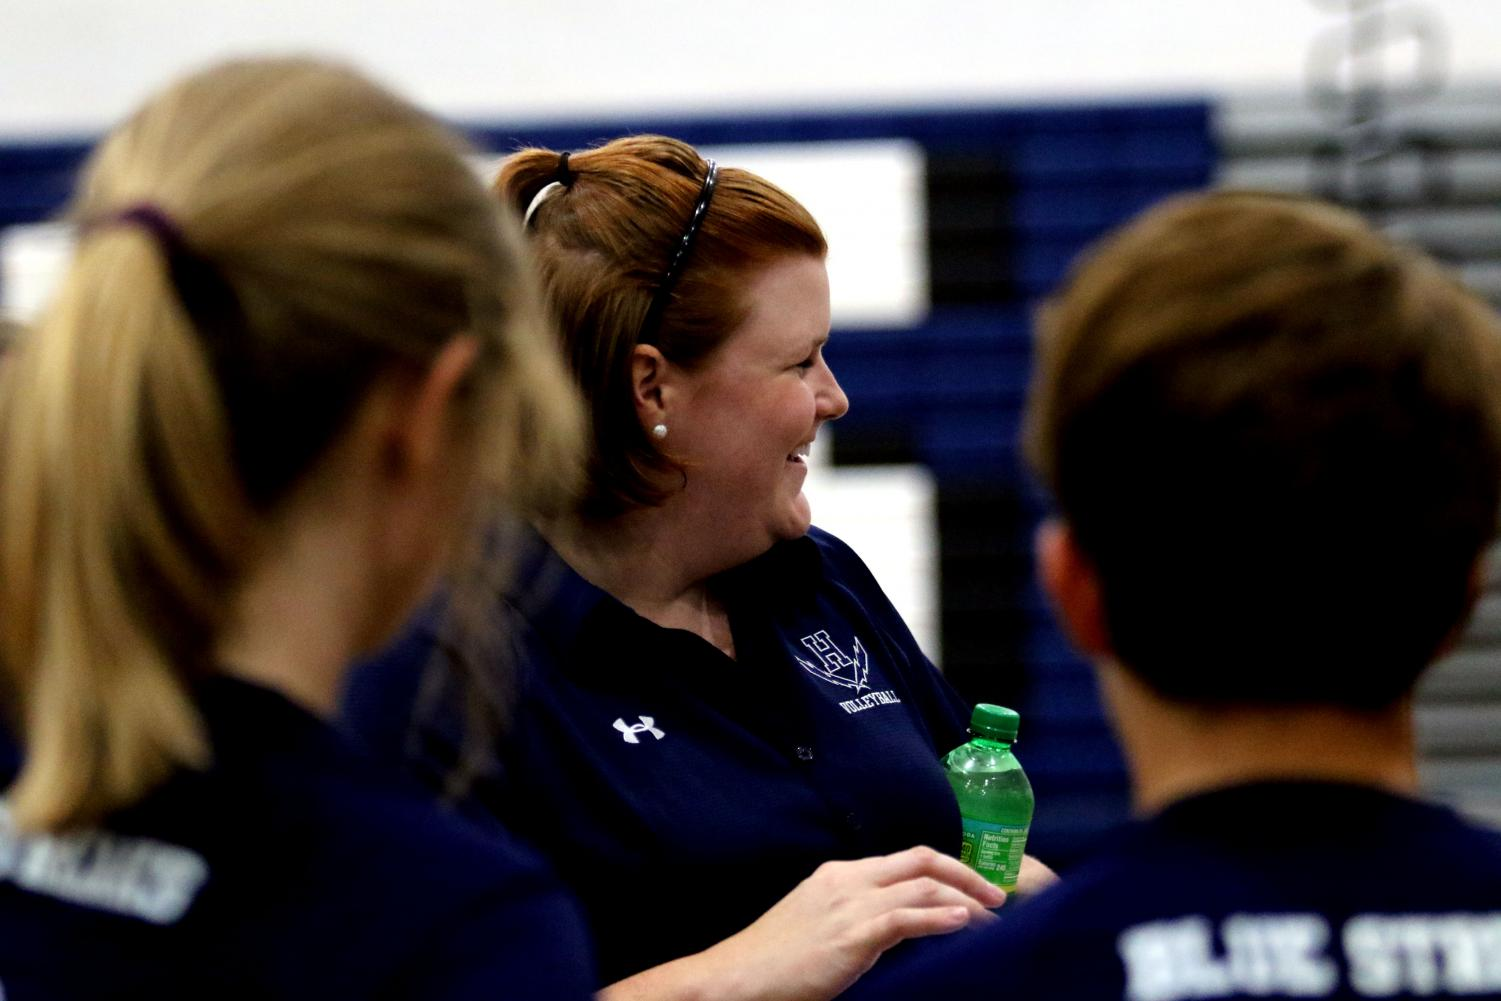 JV+coach+Danae+Delozier+shares+a+laugh+with+her+team+during+warm+ups+before+their+match+against+Rappahannock+High+School.+